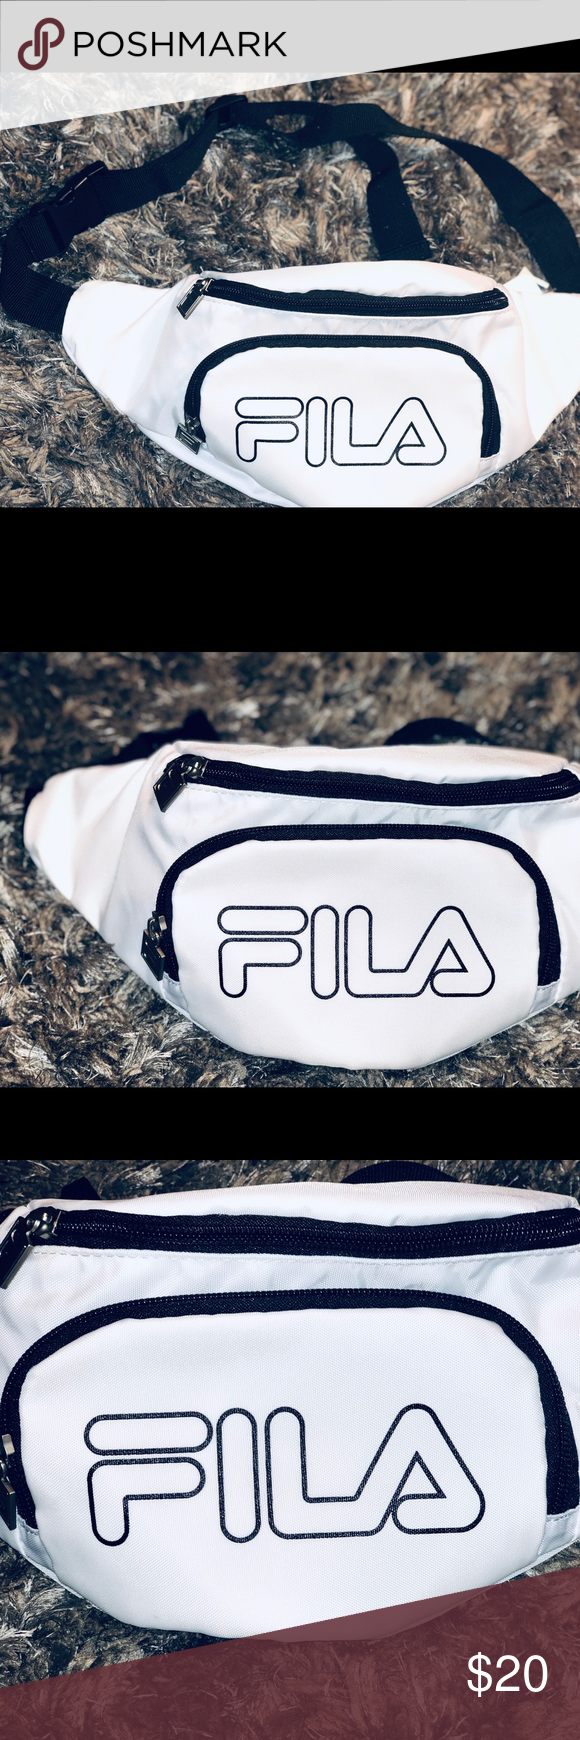 7c568bc0fcac White & Black FILA Fanny Pack Shoulder Hip sack 100% woven nylon printed  FILA linear logo three exterior zip pockets adjustable strap Fila Bags  Luggage ...